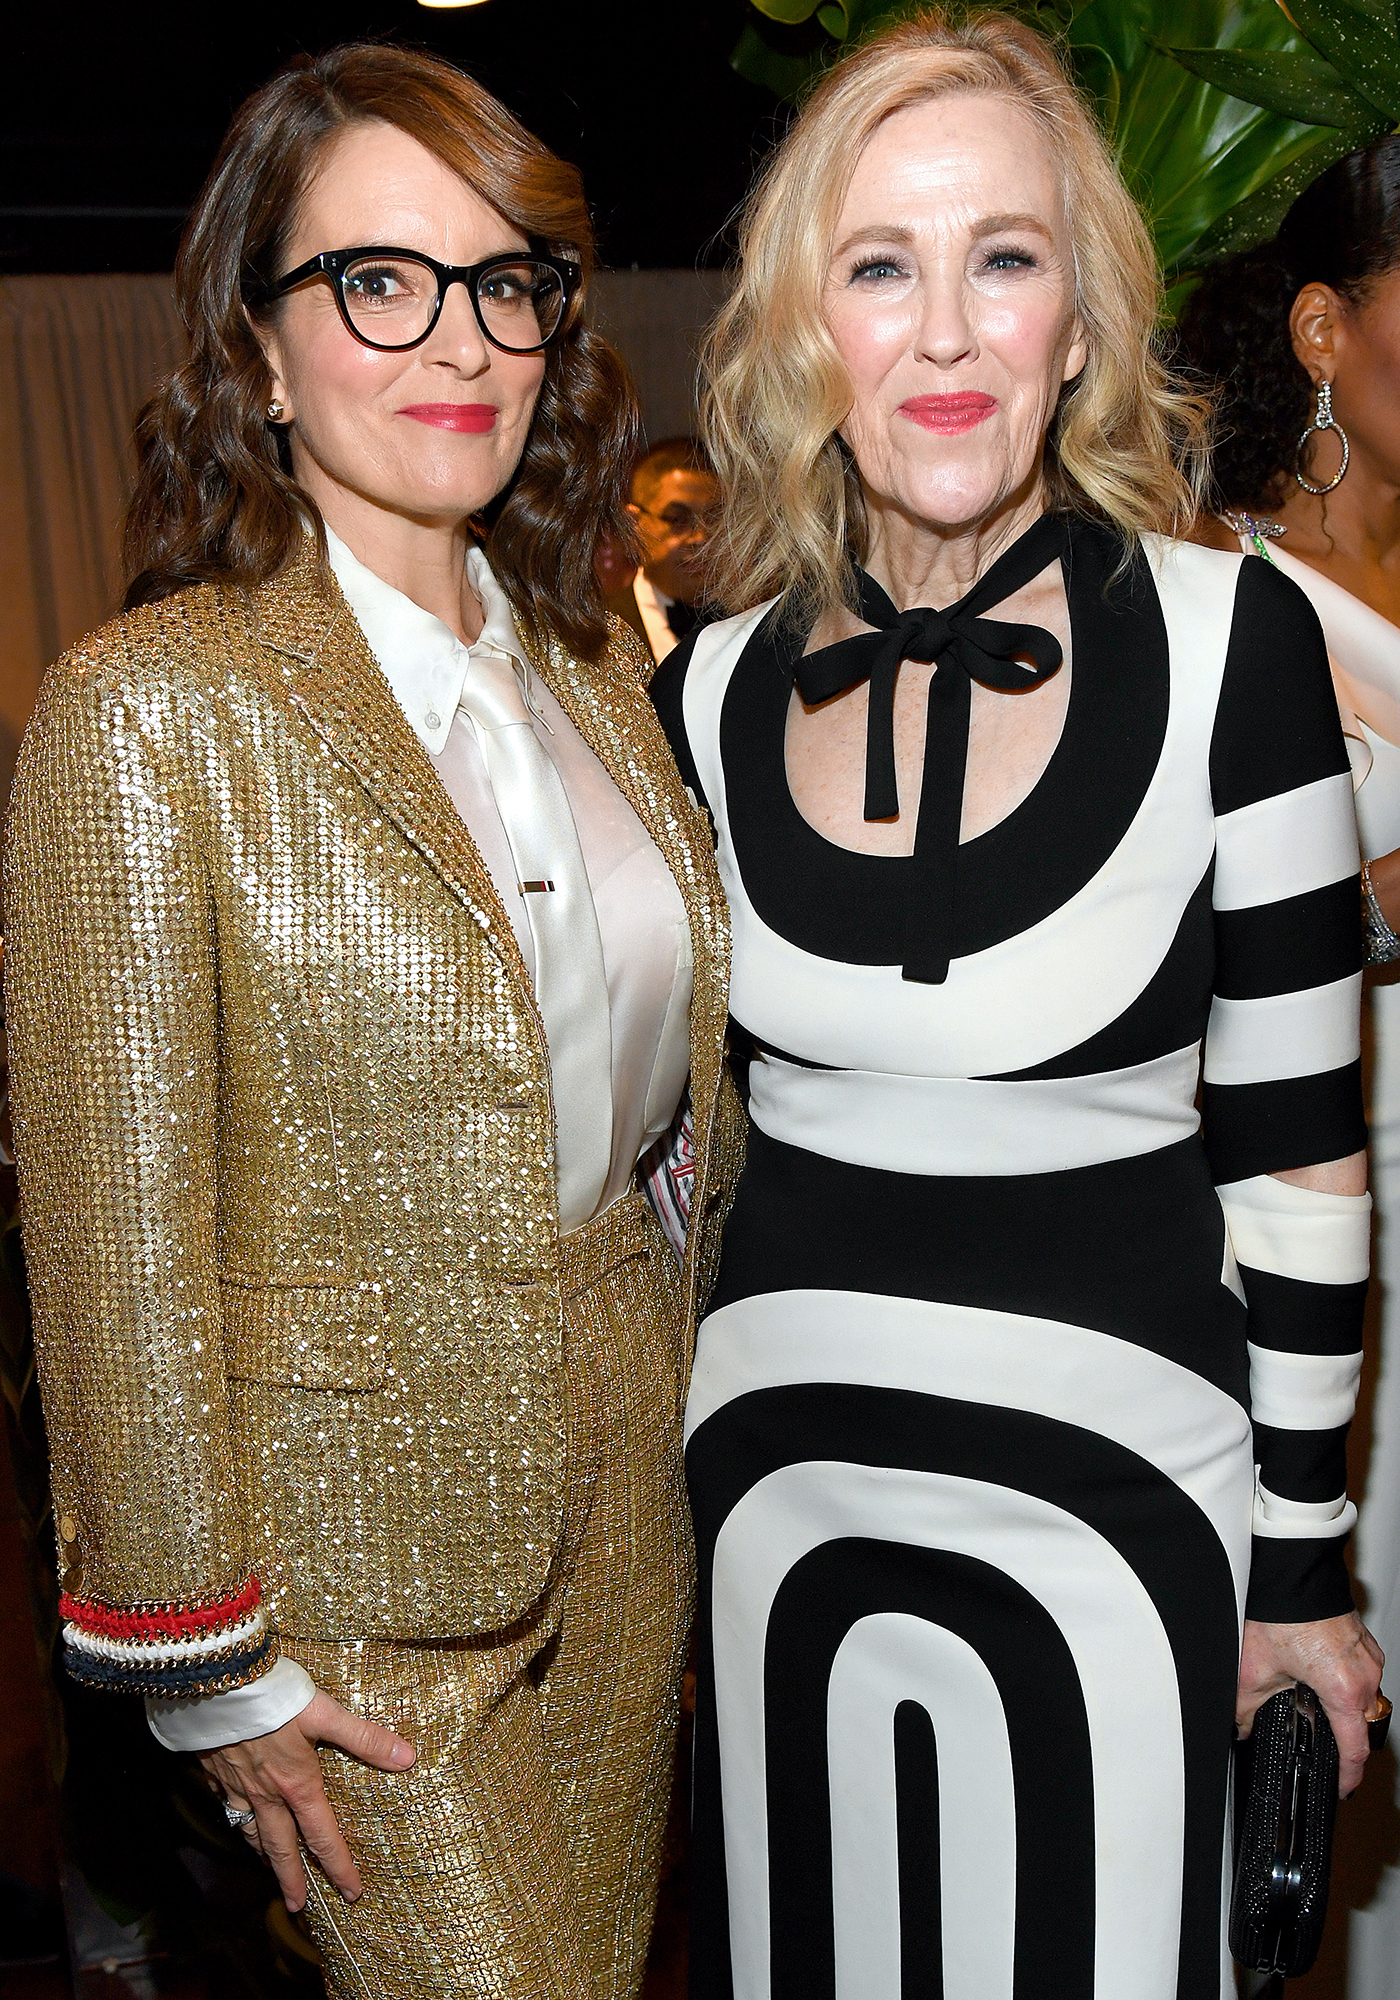 Tina Fey and Catherine O'Hara appear backstage during the 73rd Annual Tony Awards at Radio City Music Hall in New York City on June 9, 2019.